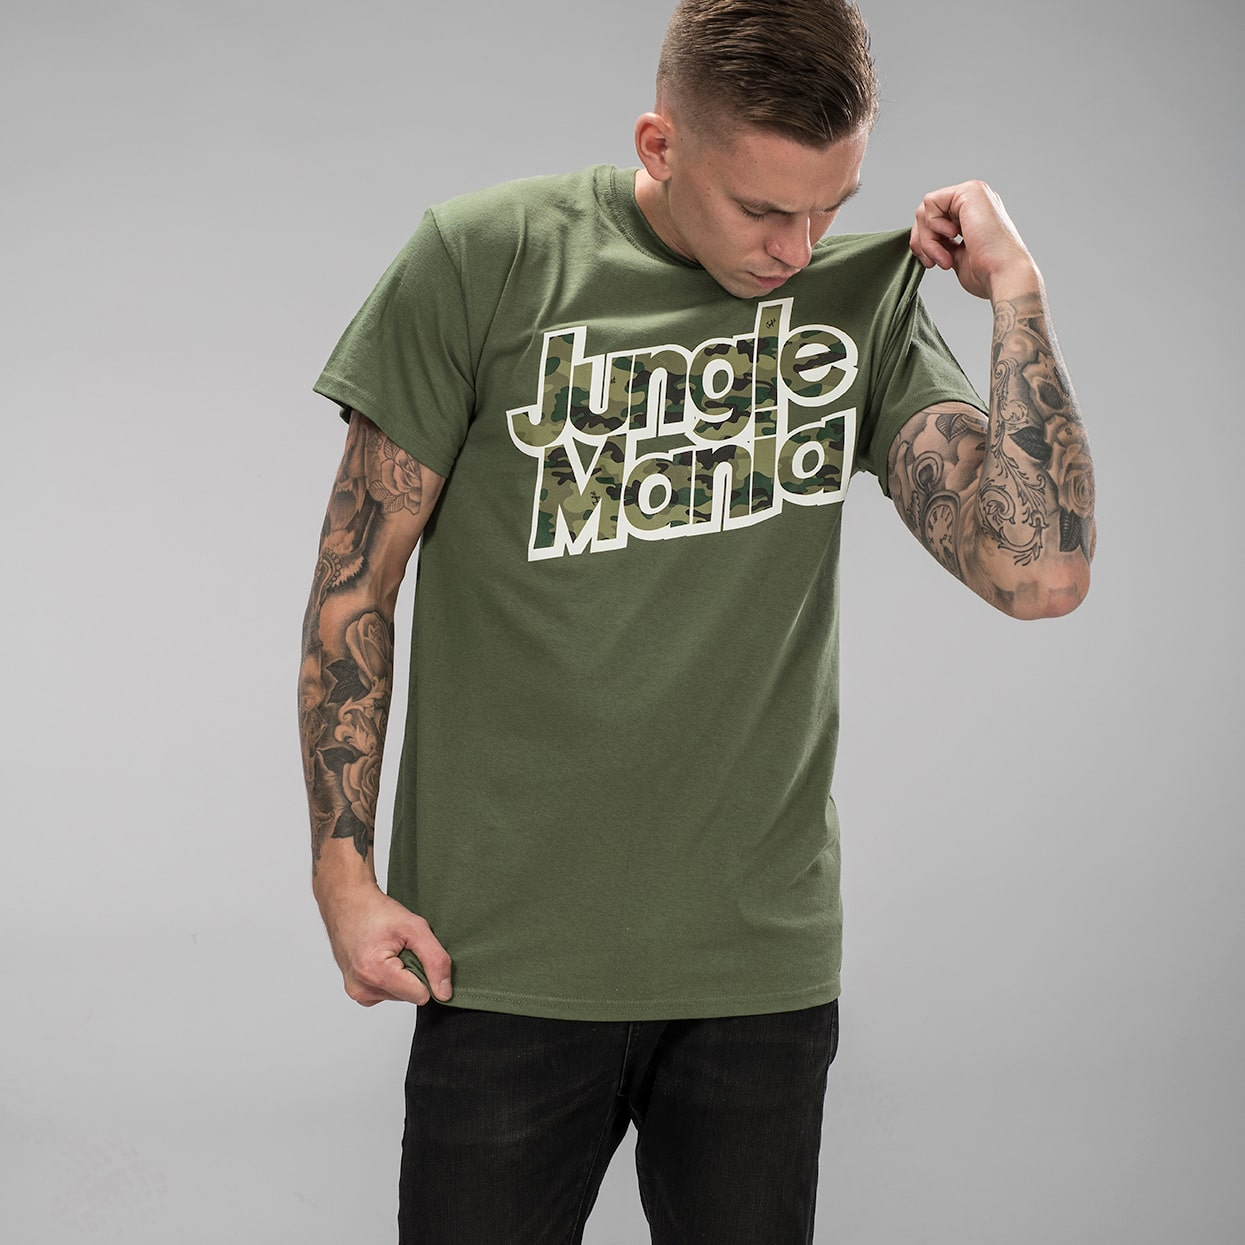 Jungle Mania T-Shirt in Green front shot